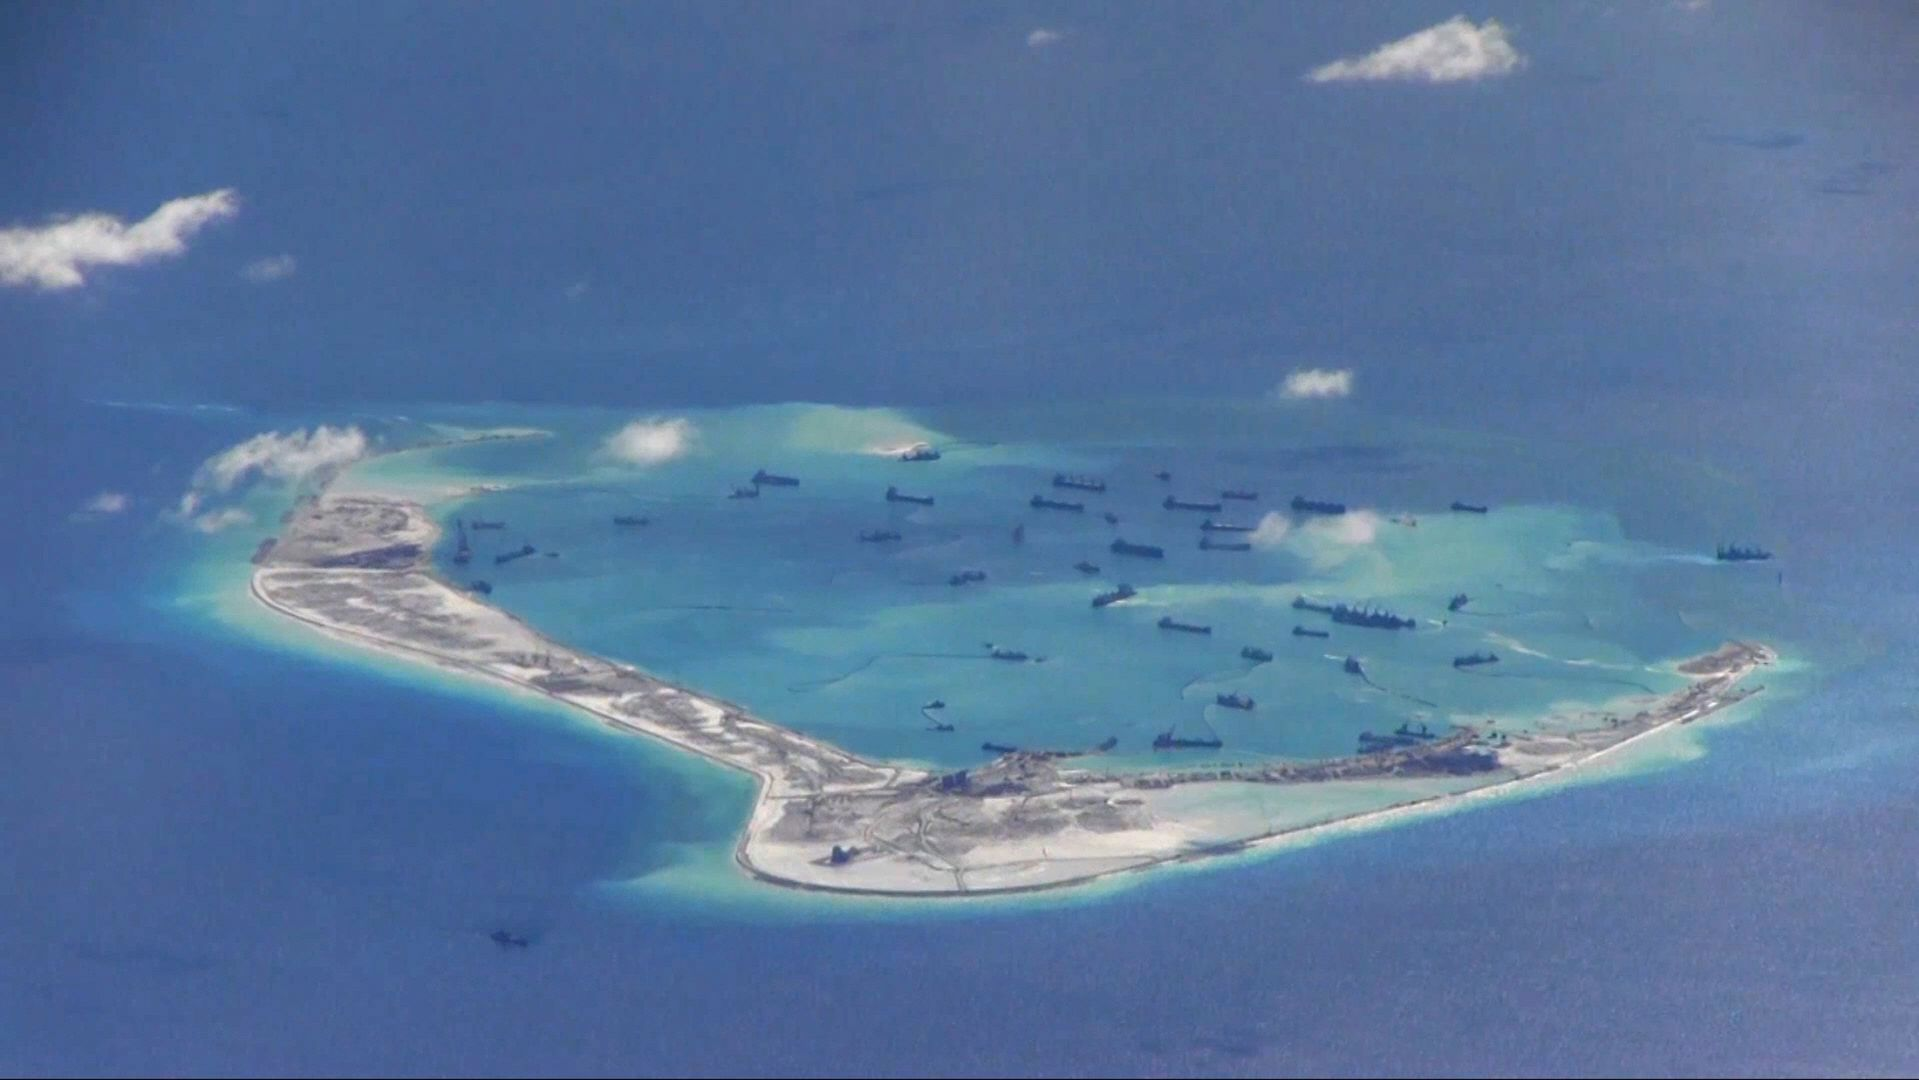 US vows to continue patrols after China warns spy plane